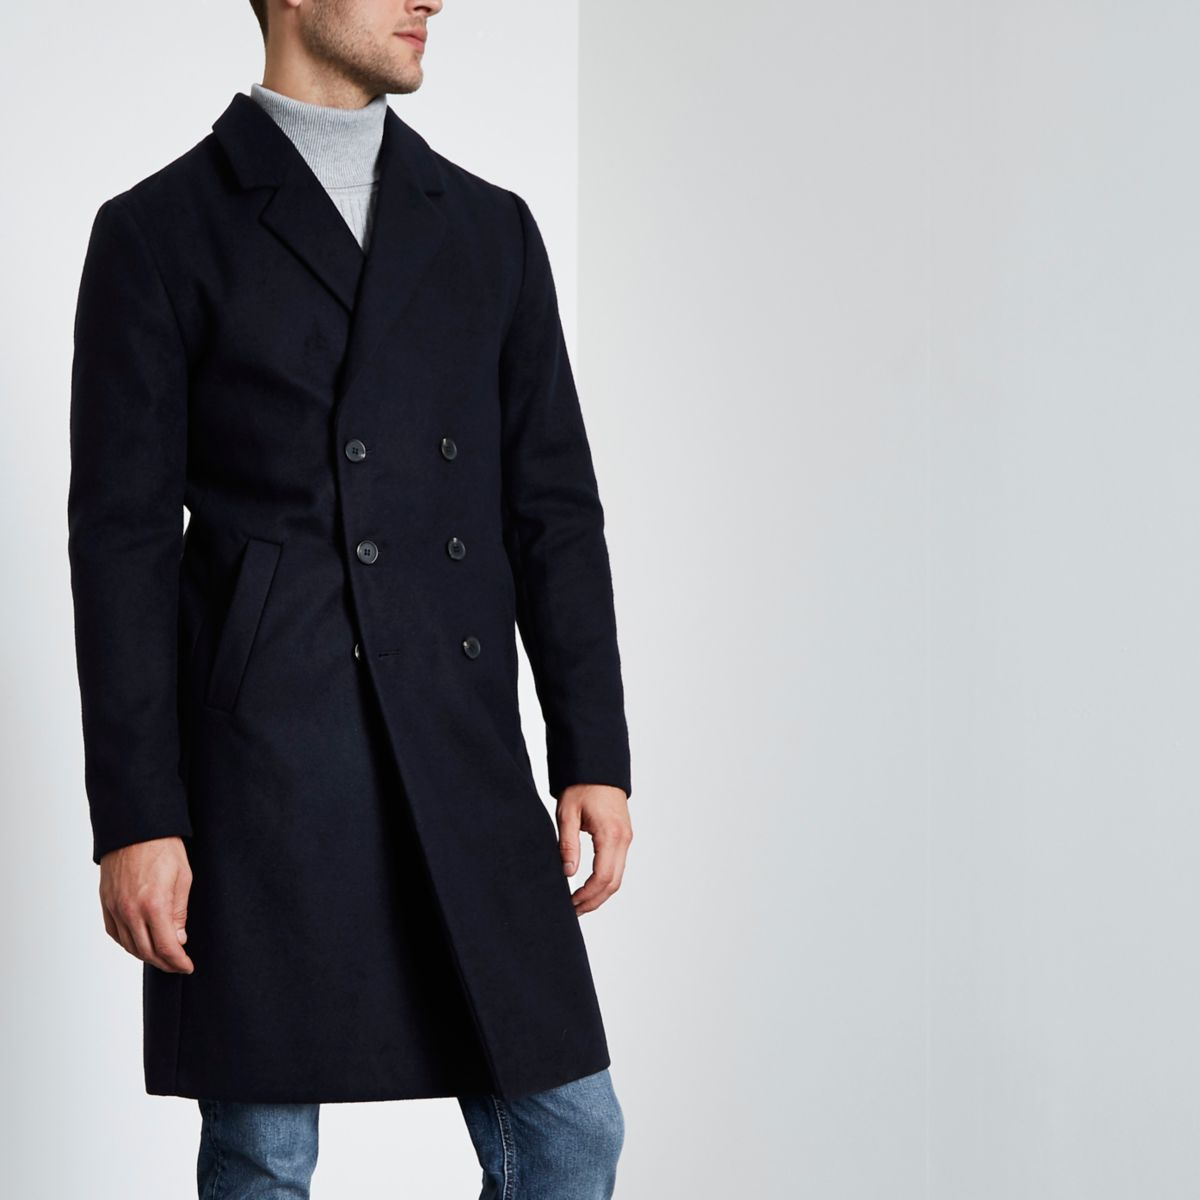 Navy double breasted overcoat